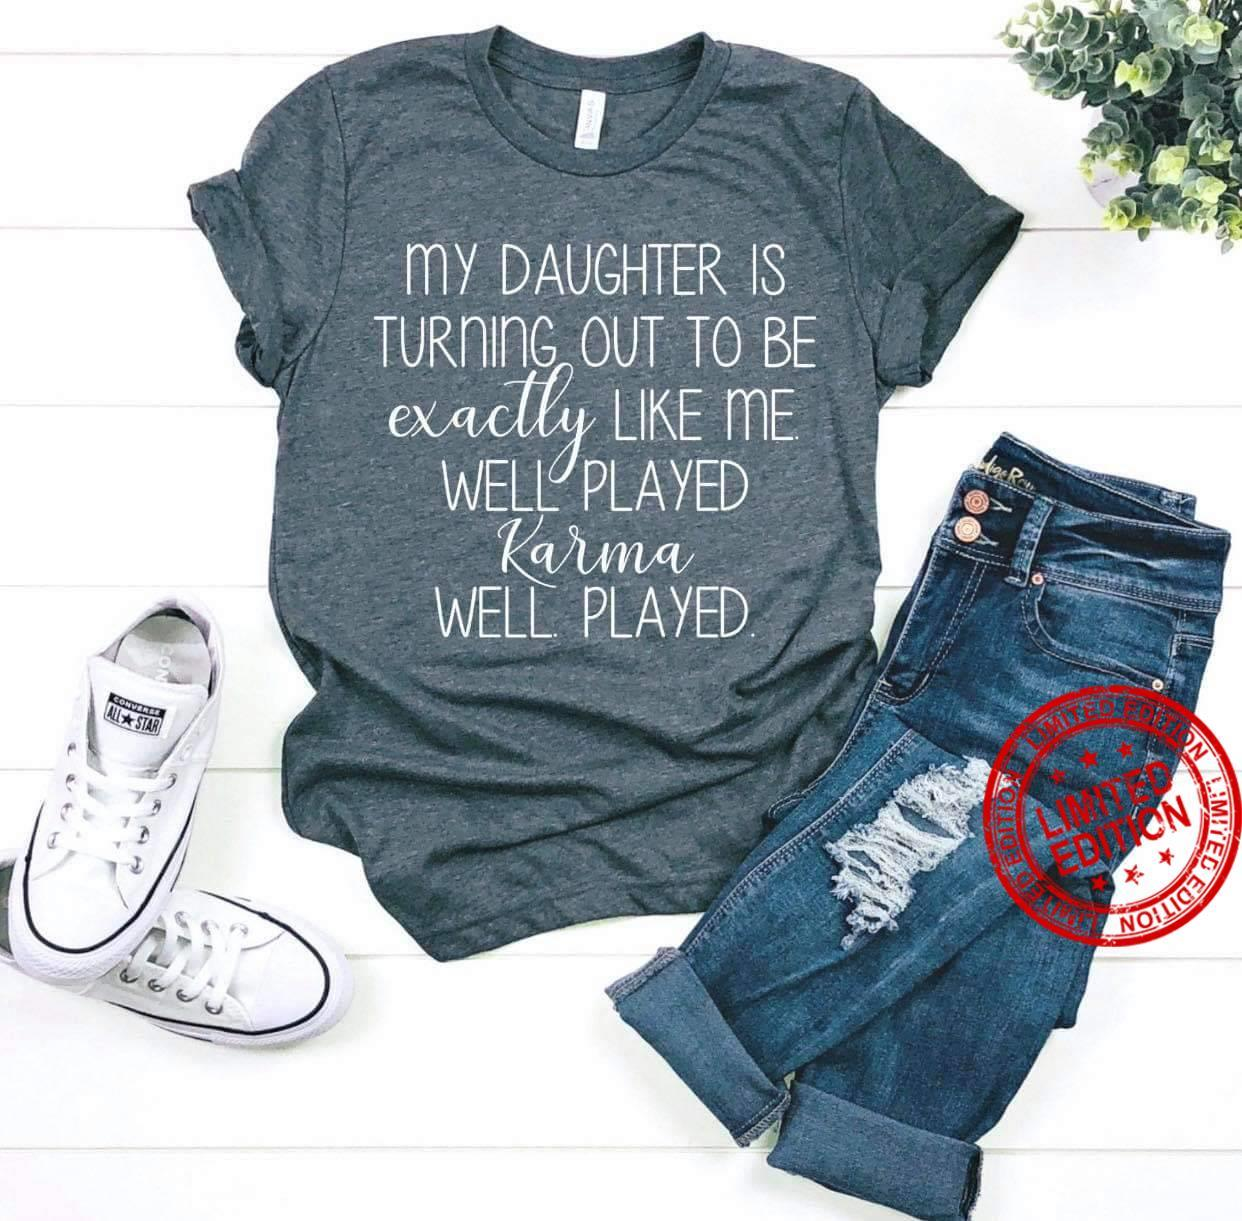 My Daughter Is Turning Out To Be Exactily Like Me Well Played Karma Well Played Shirt